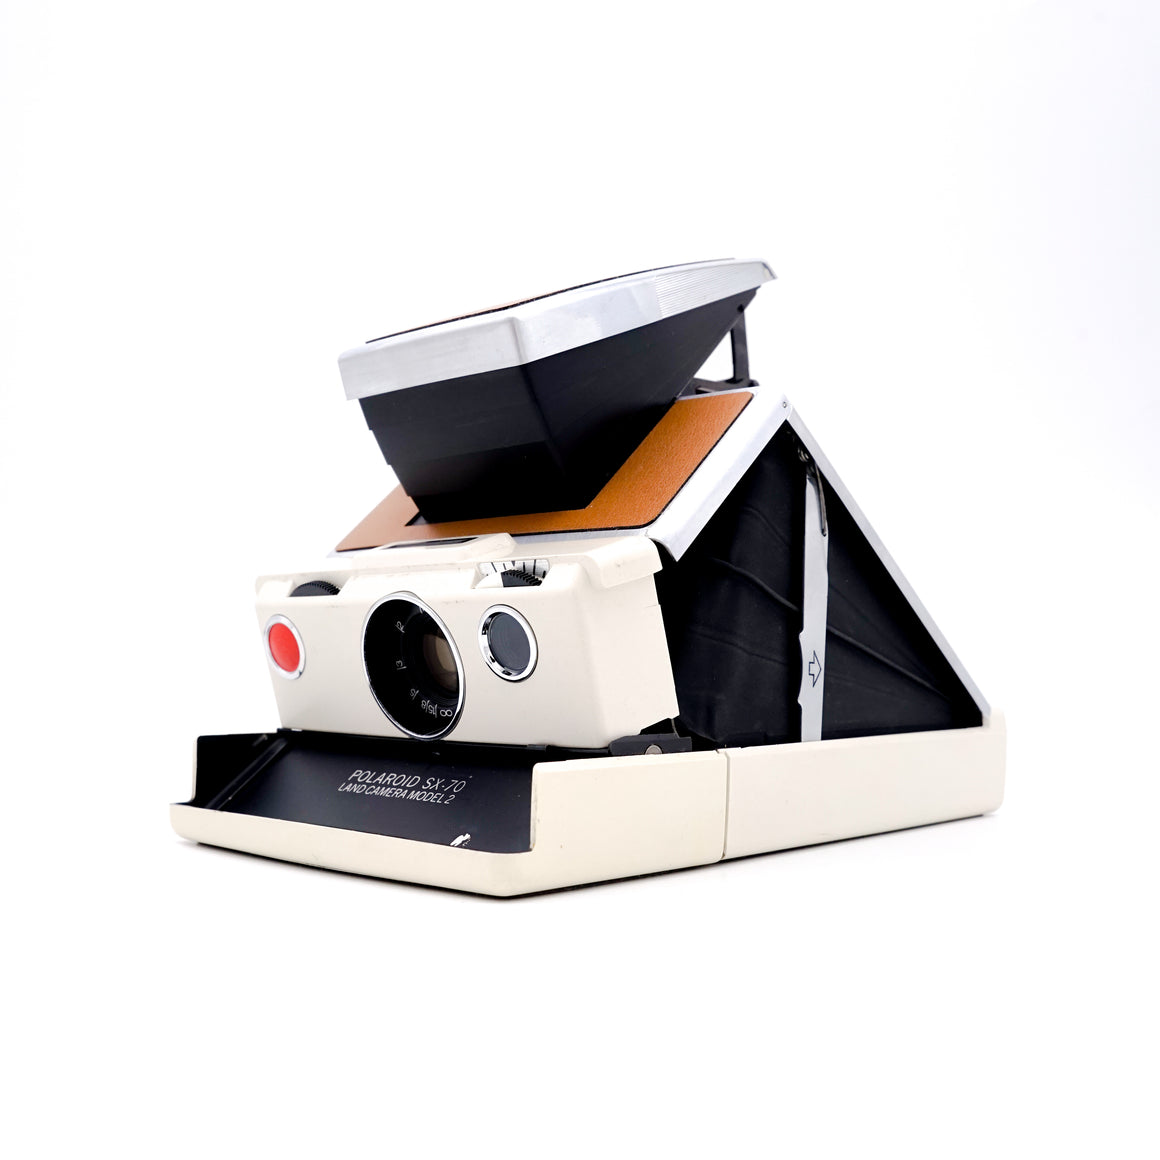 Polaroid SX-70 Land Camera Model 2 (Beige) Instant Camera